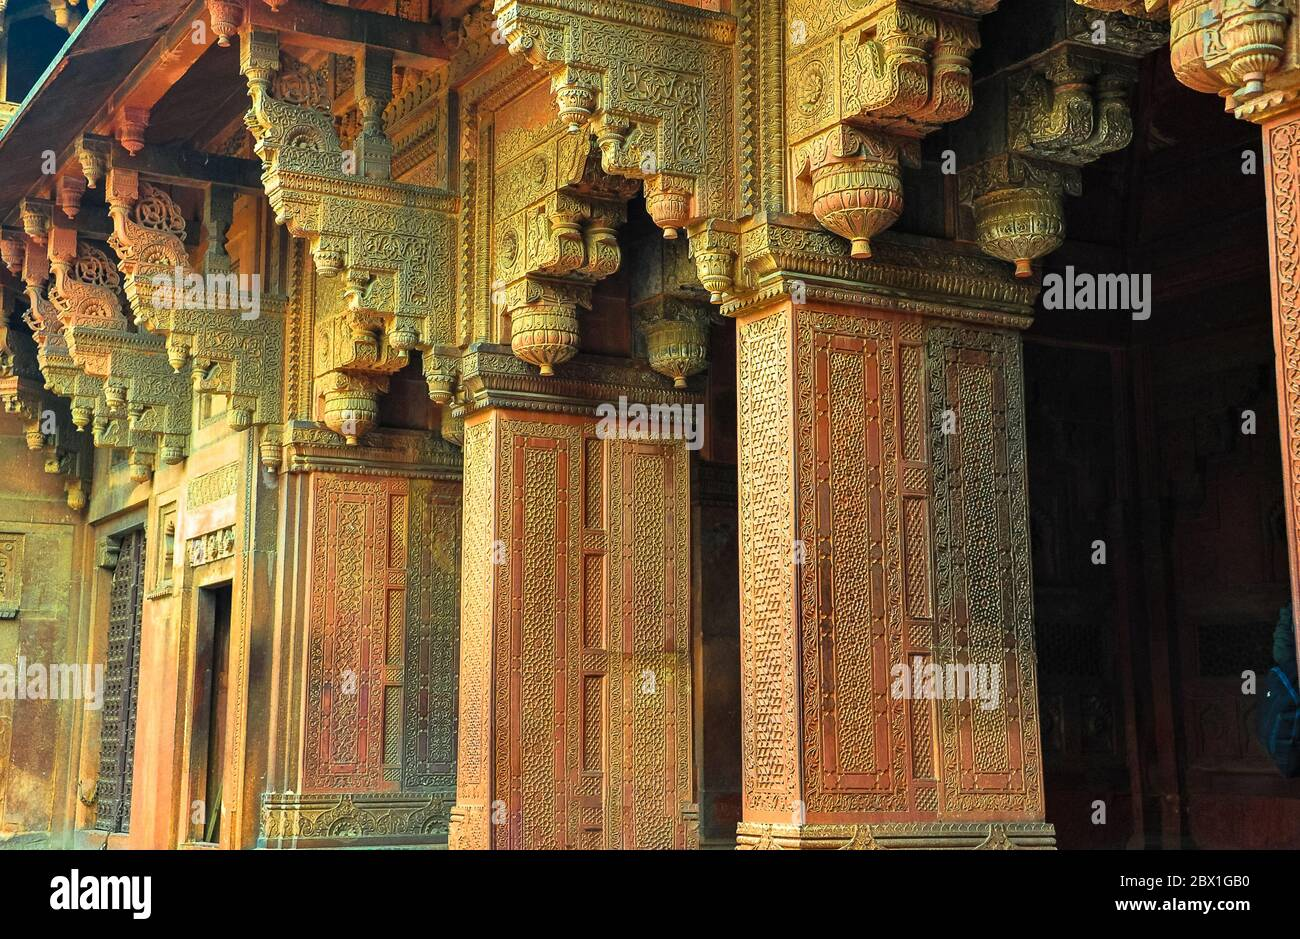 Massive red sandstone pillars, intricately carved. Interior courtyard at the Agra Fort, Uttar Pradesh, India. Stock Photo